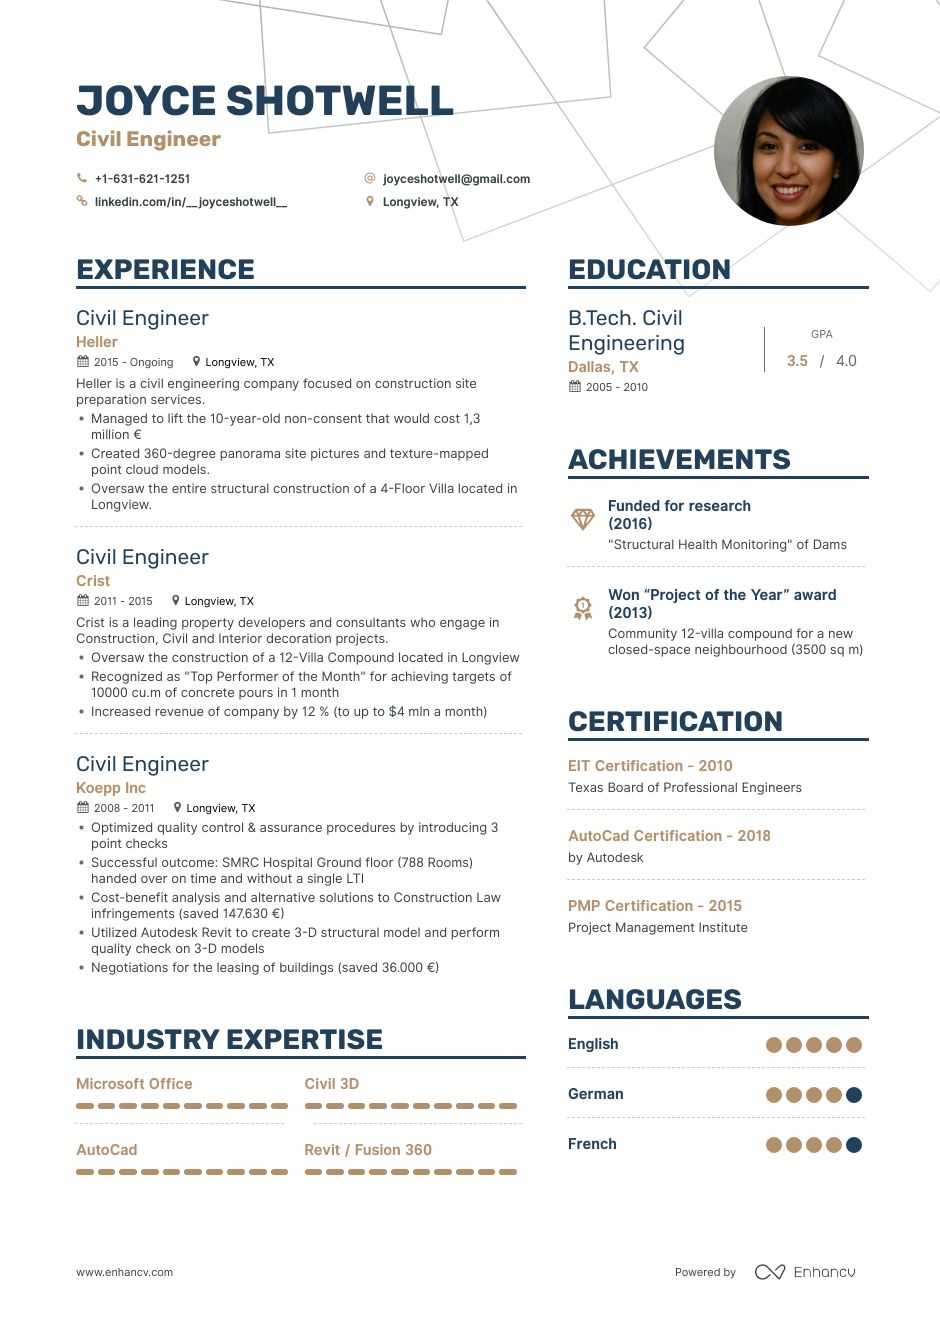 Civil Engineer Resume Examples Guide Pro Tips Enhancv